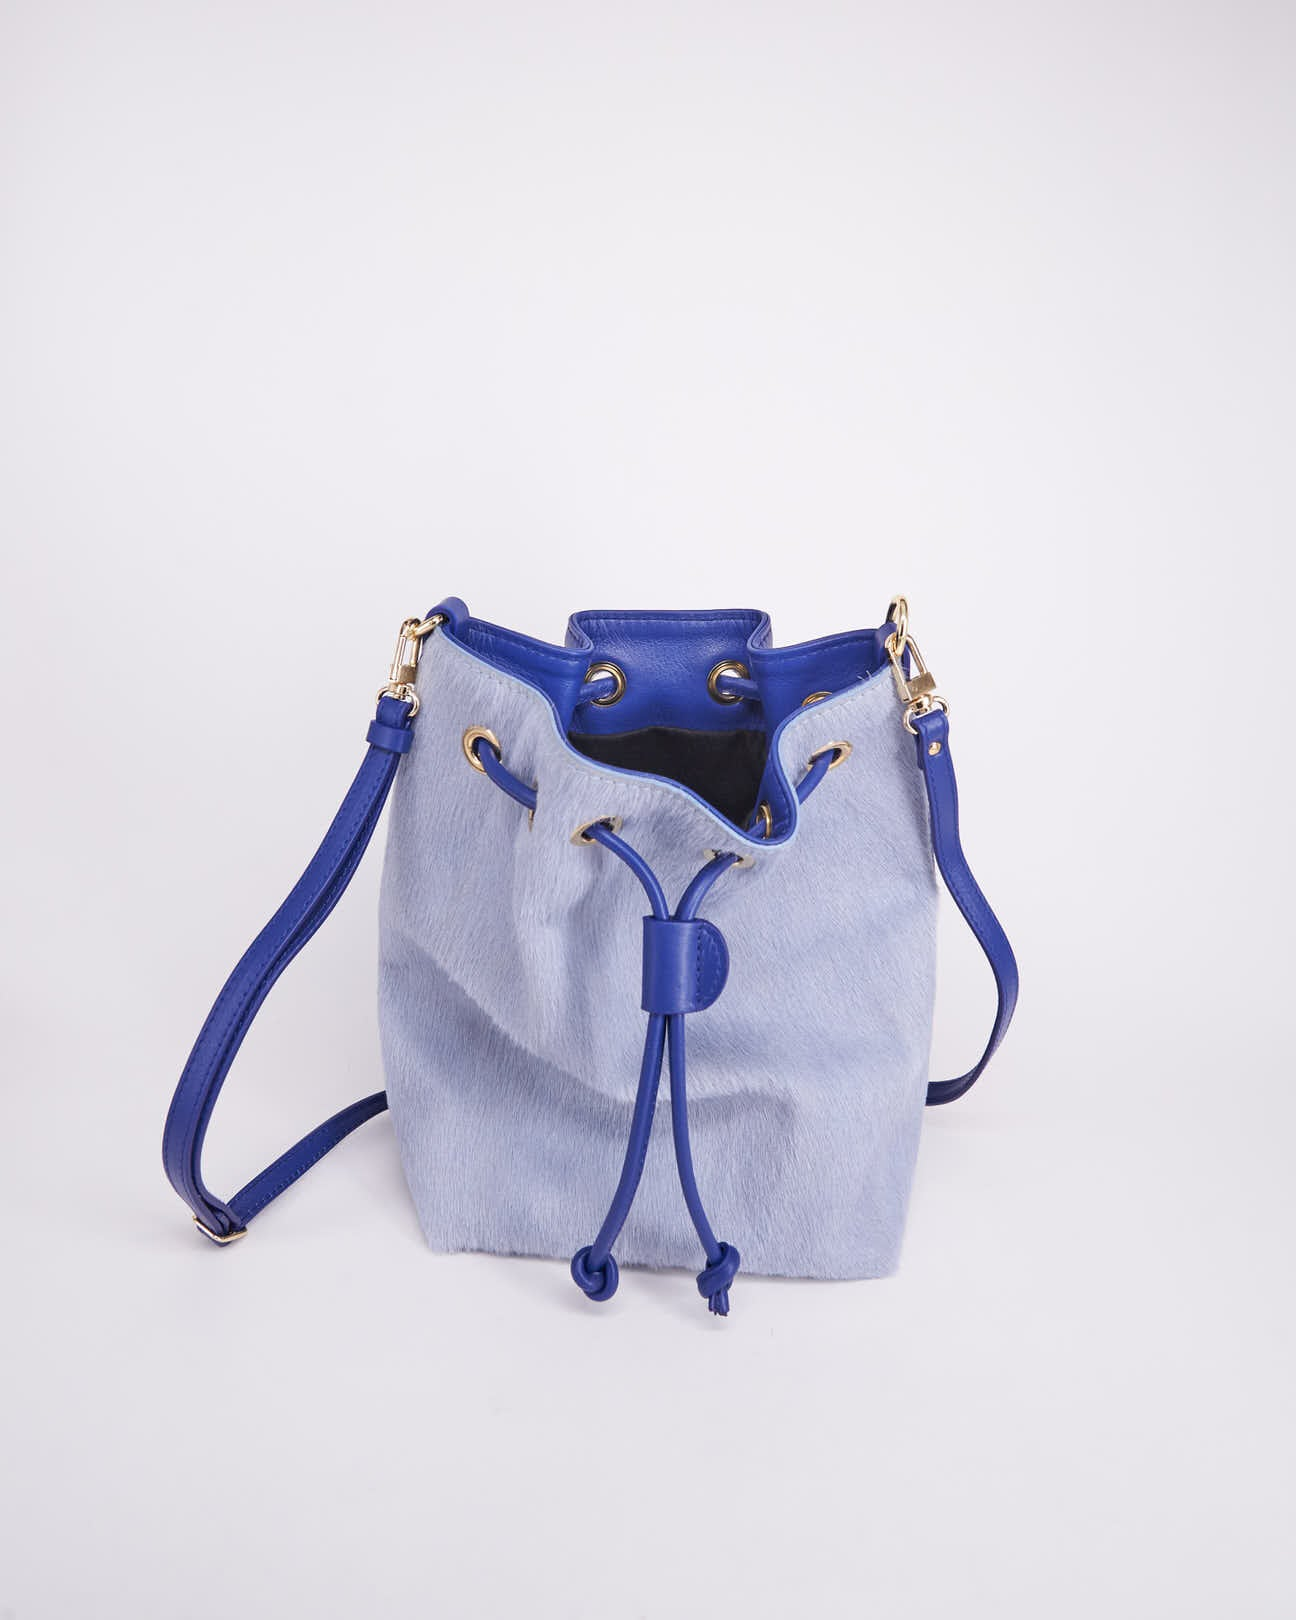 Bag-Nuo Sac-Nuovum-Leather-Blue-localdesigners-Barcelona-Nuovum-Handmade-inside